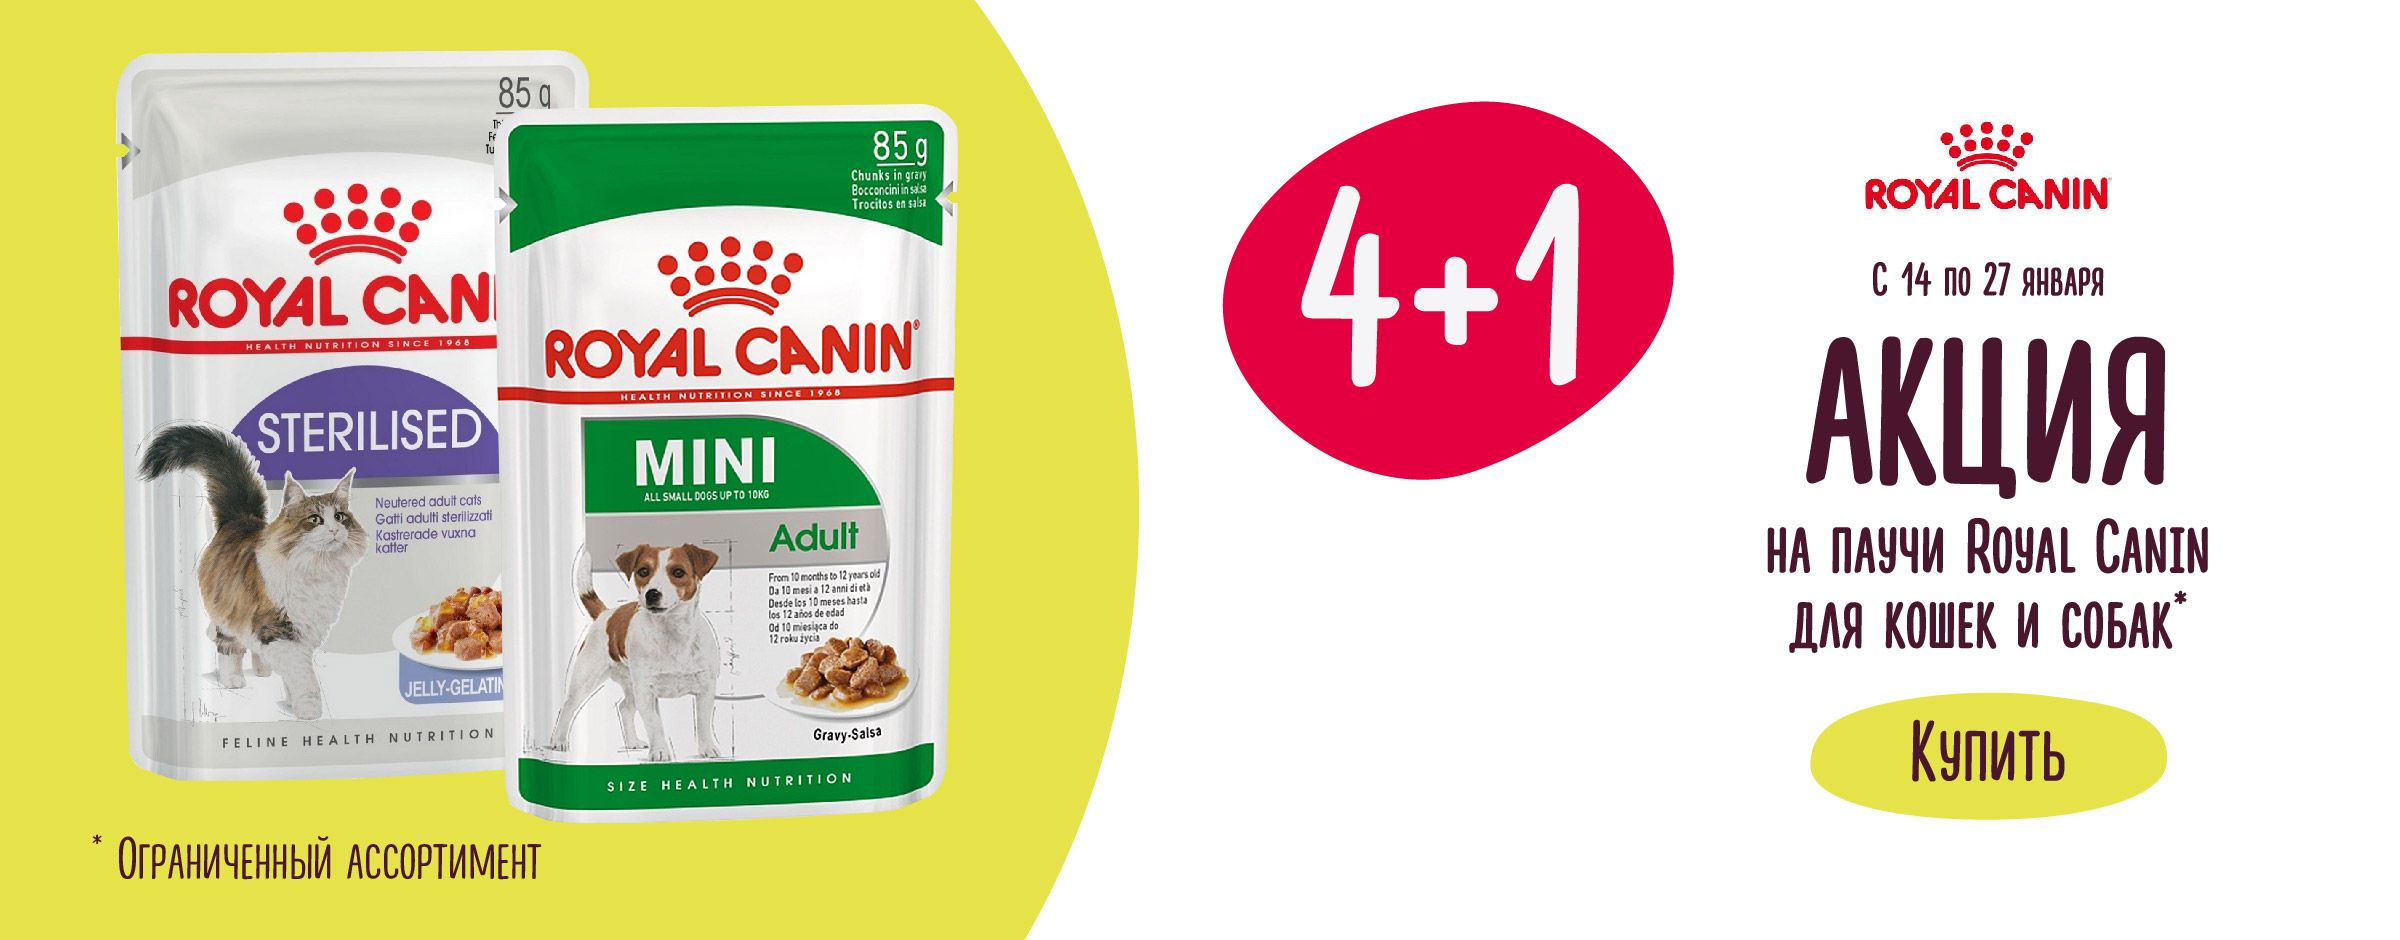 Royal Canin Листовка 1